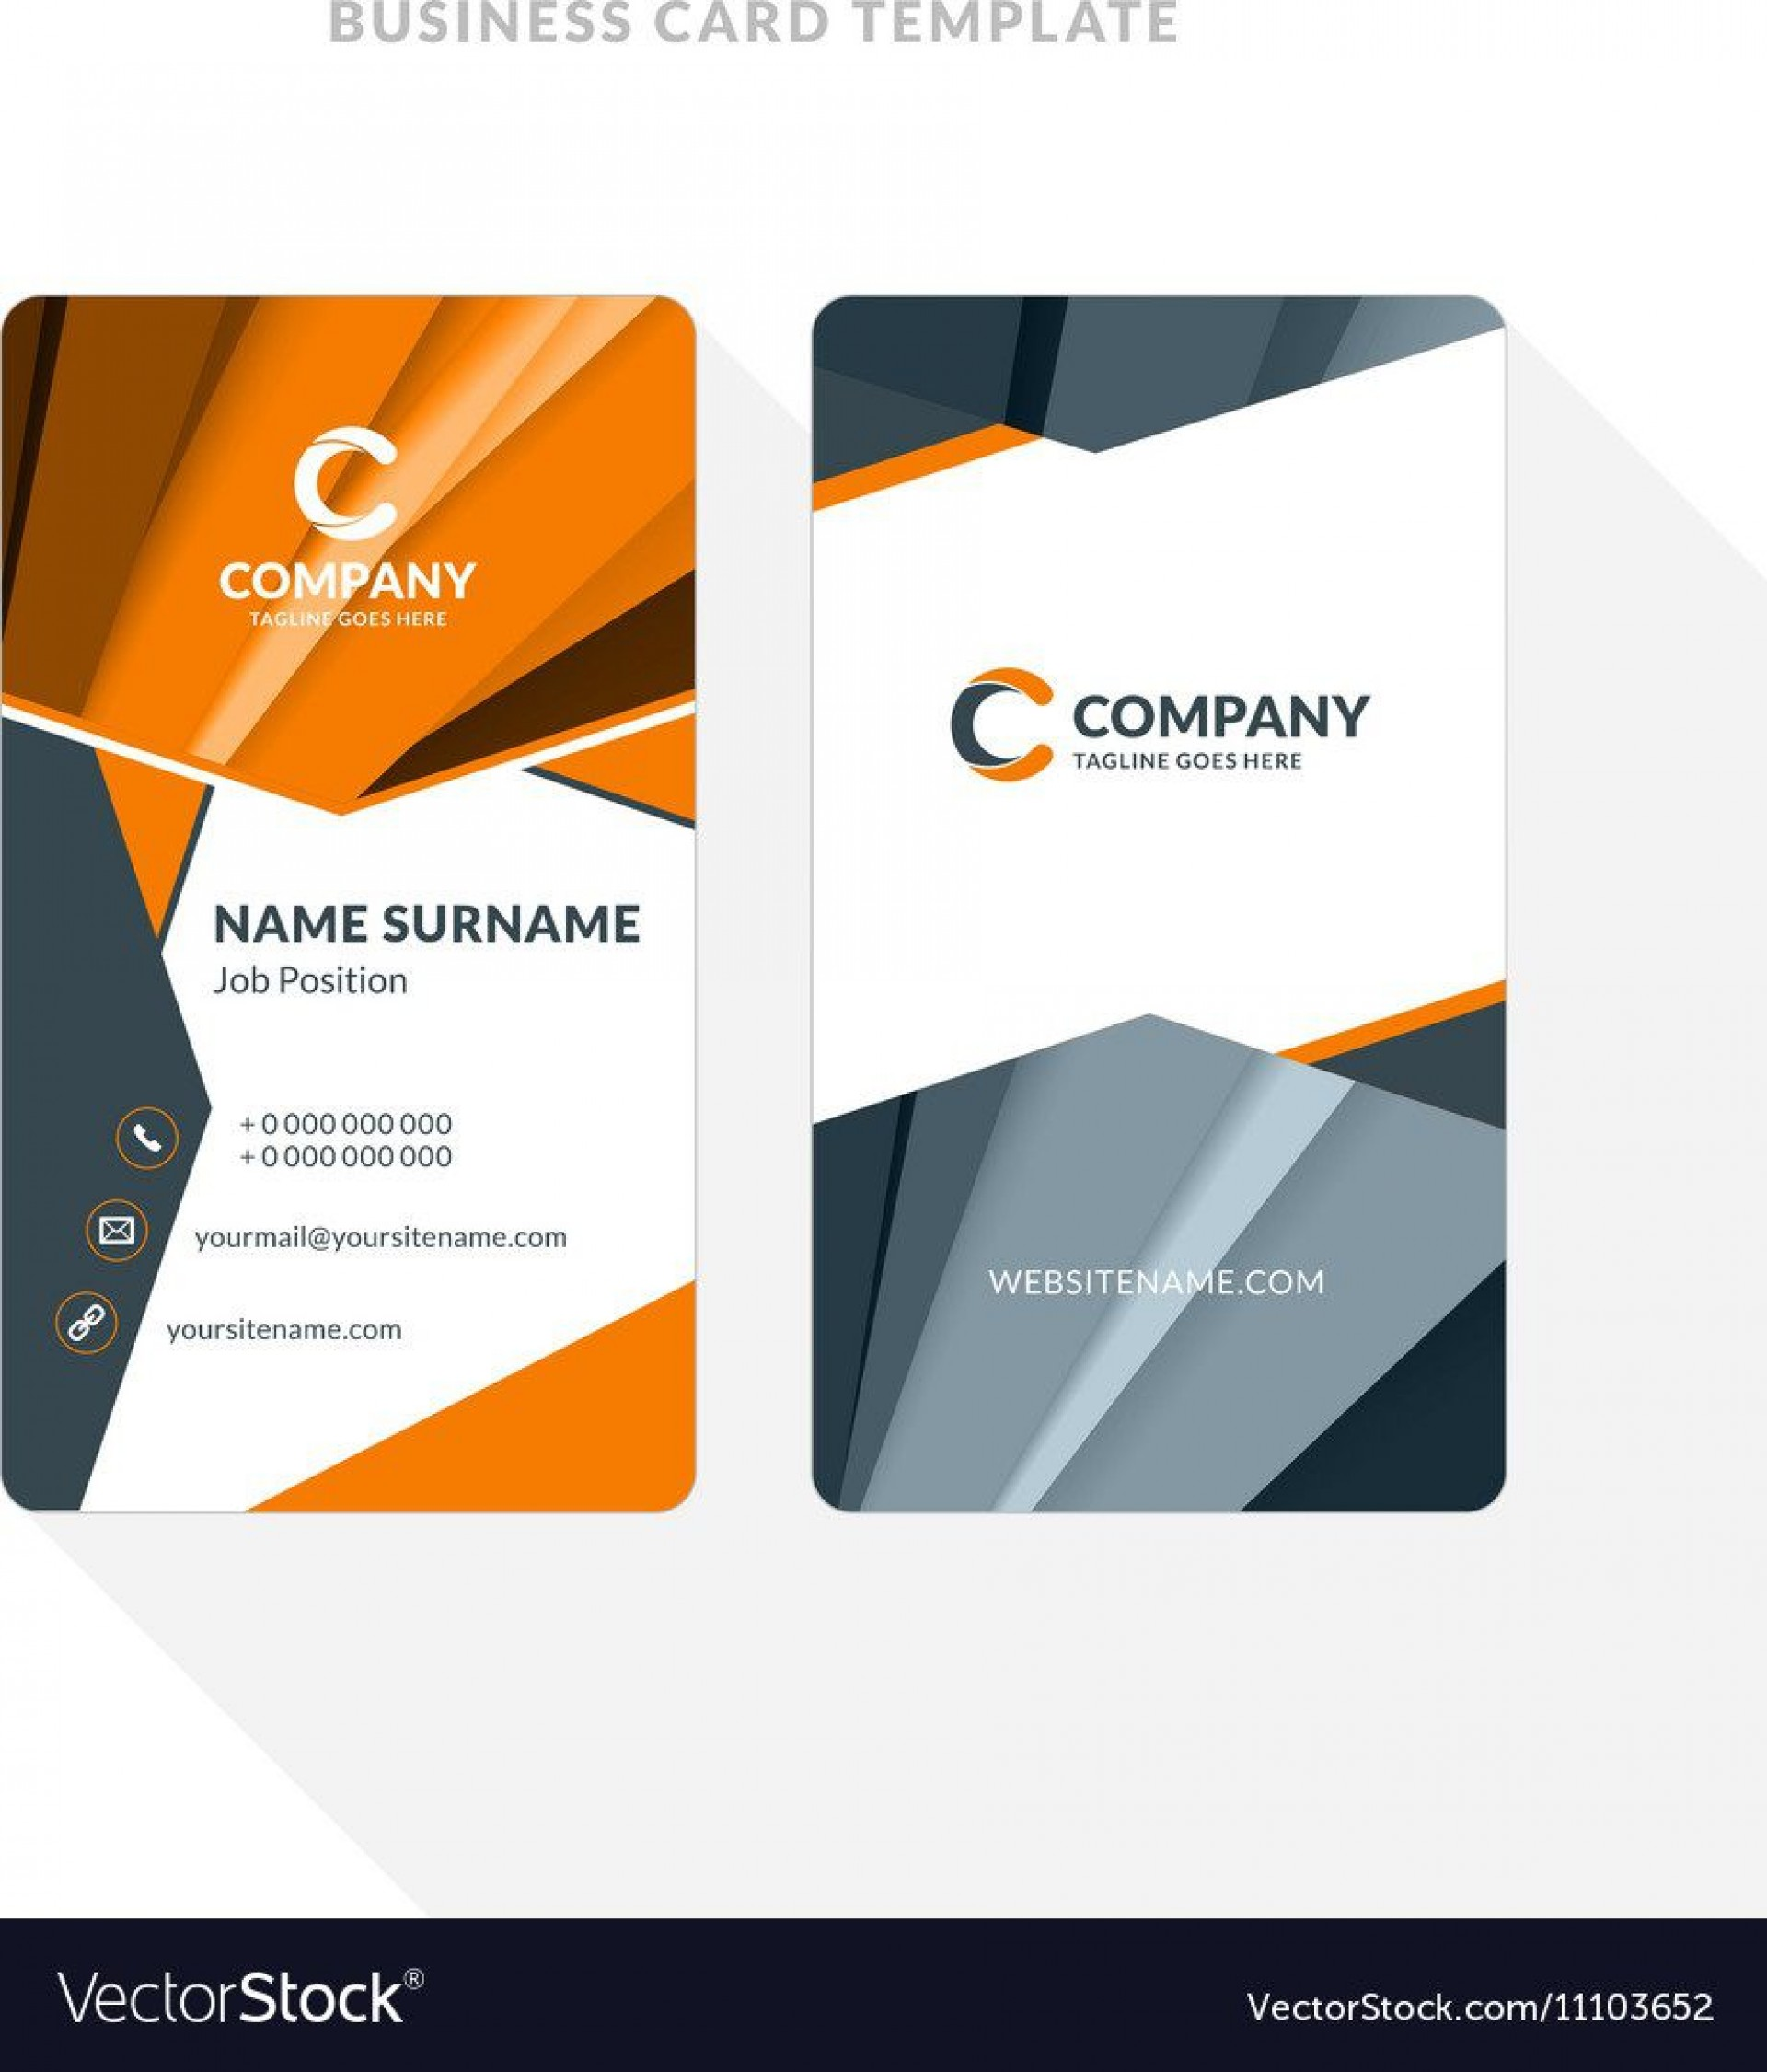 009 Archaicawful Double Sided Busines Card Template Inspiration  Templates Word Free Two Microsoft1920